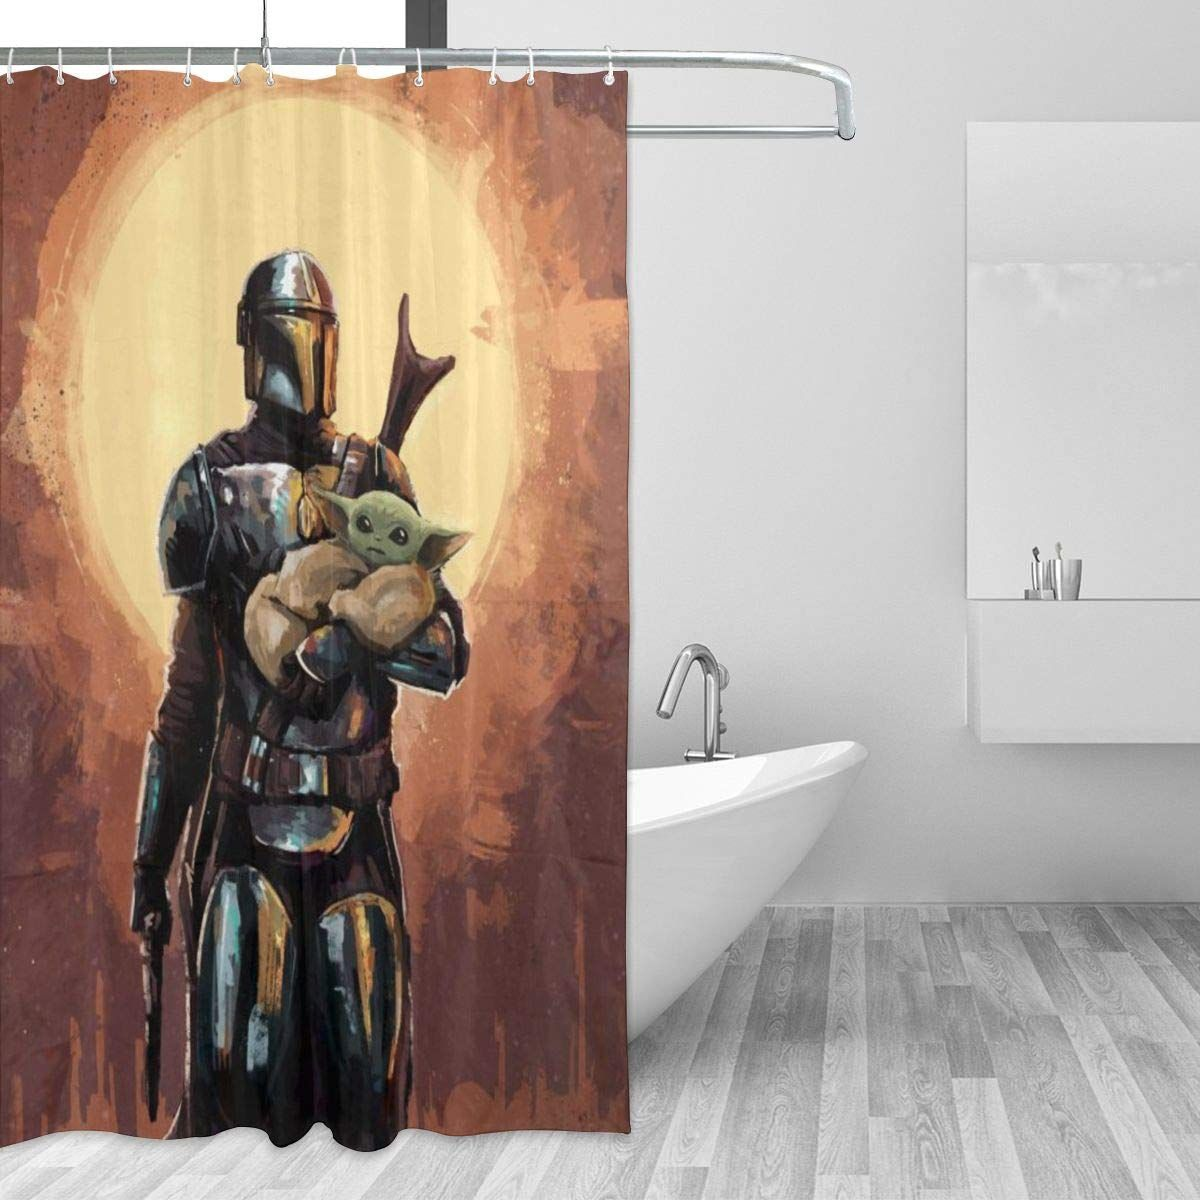 Star Wars Mandalorian Shower Curtains In 2020 Star Wars Bathroom